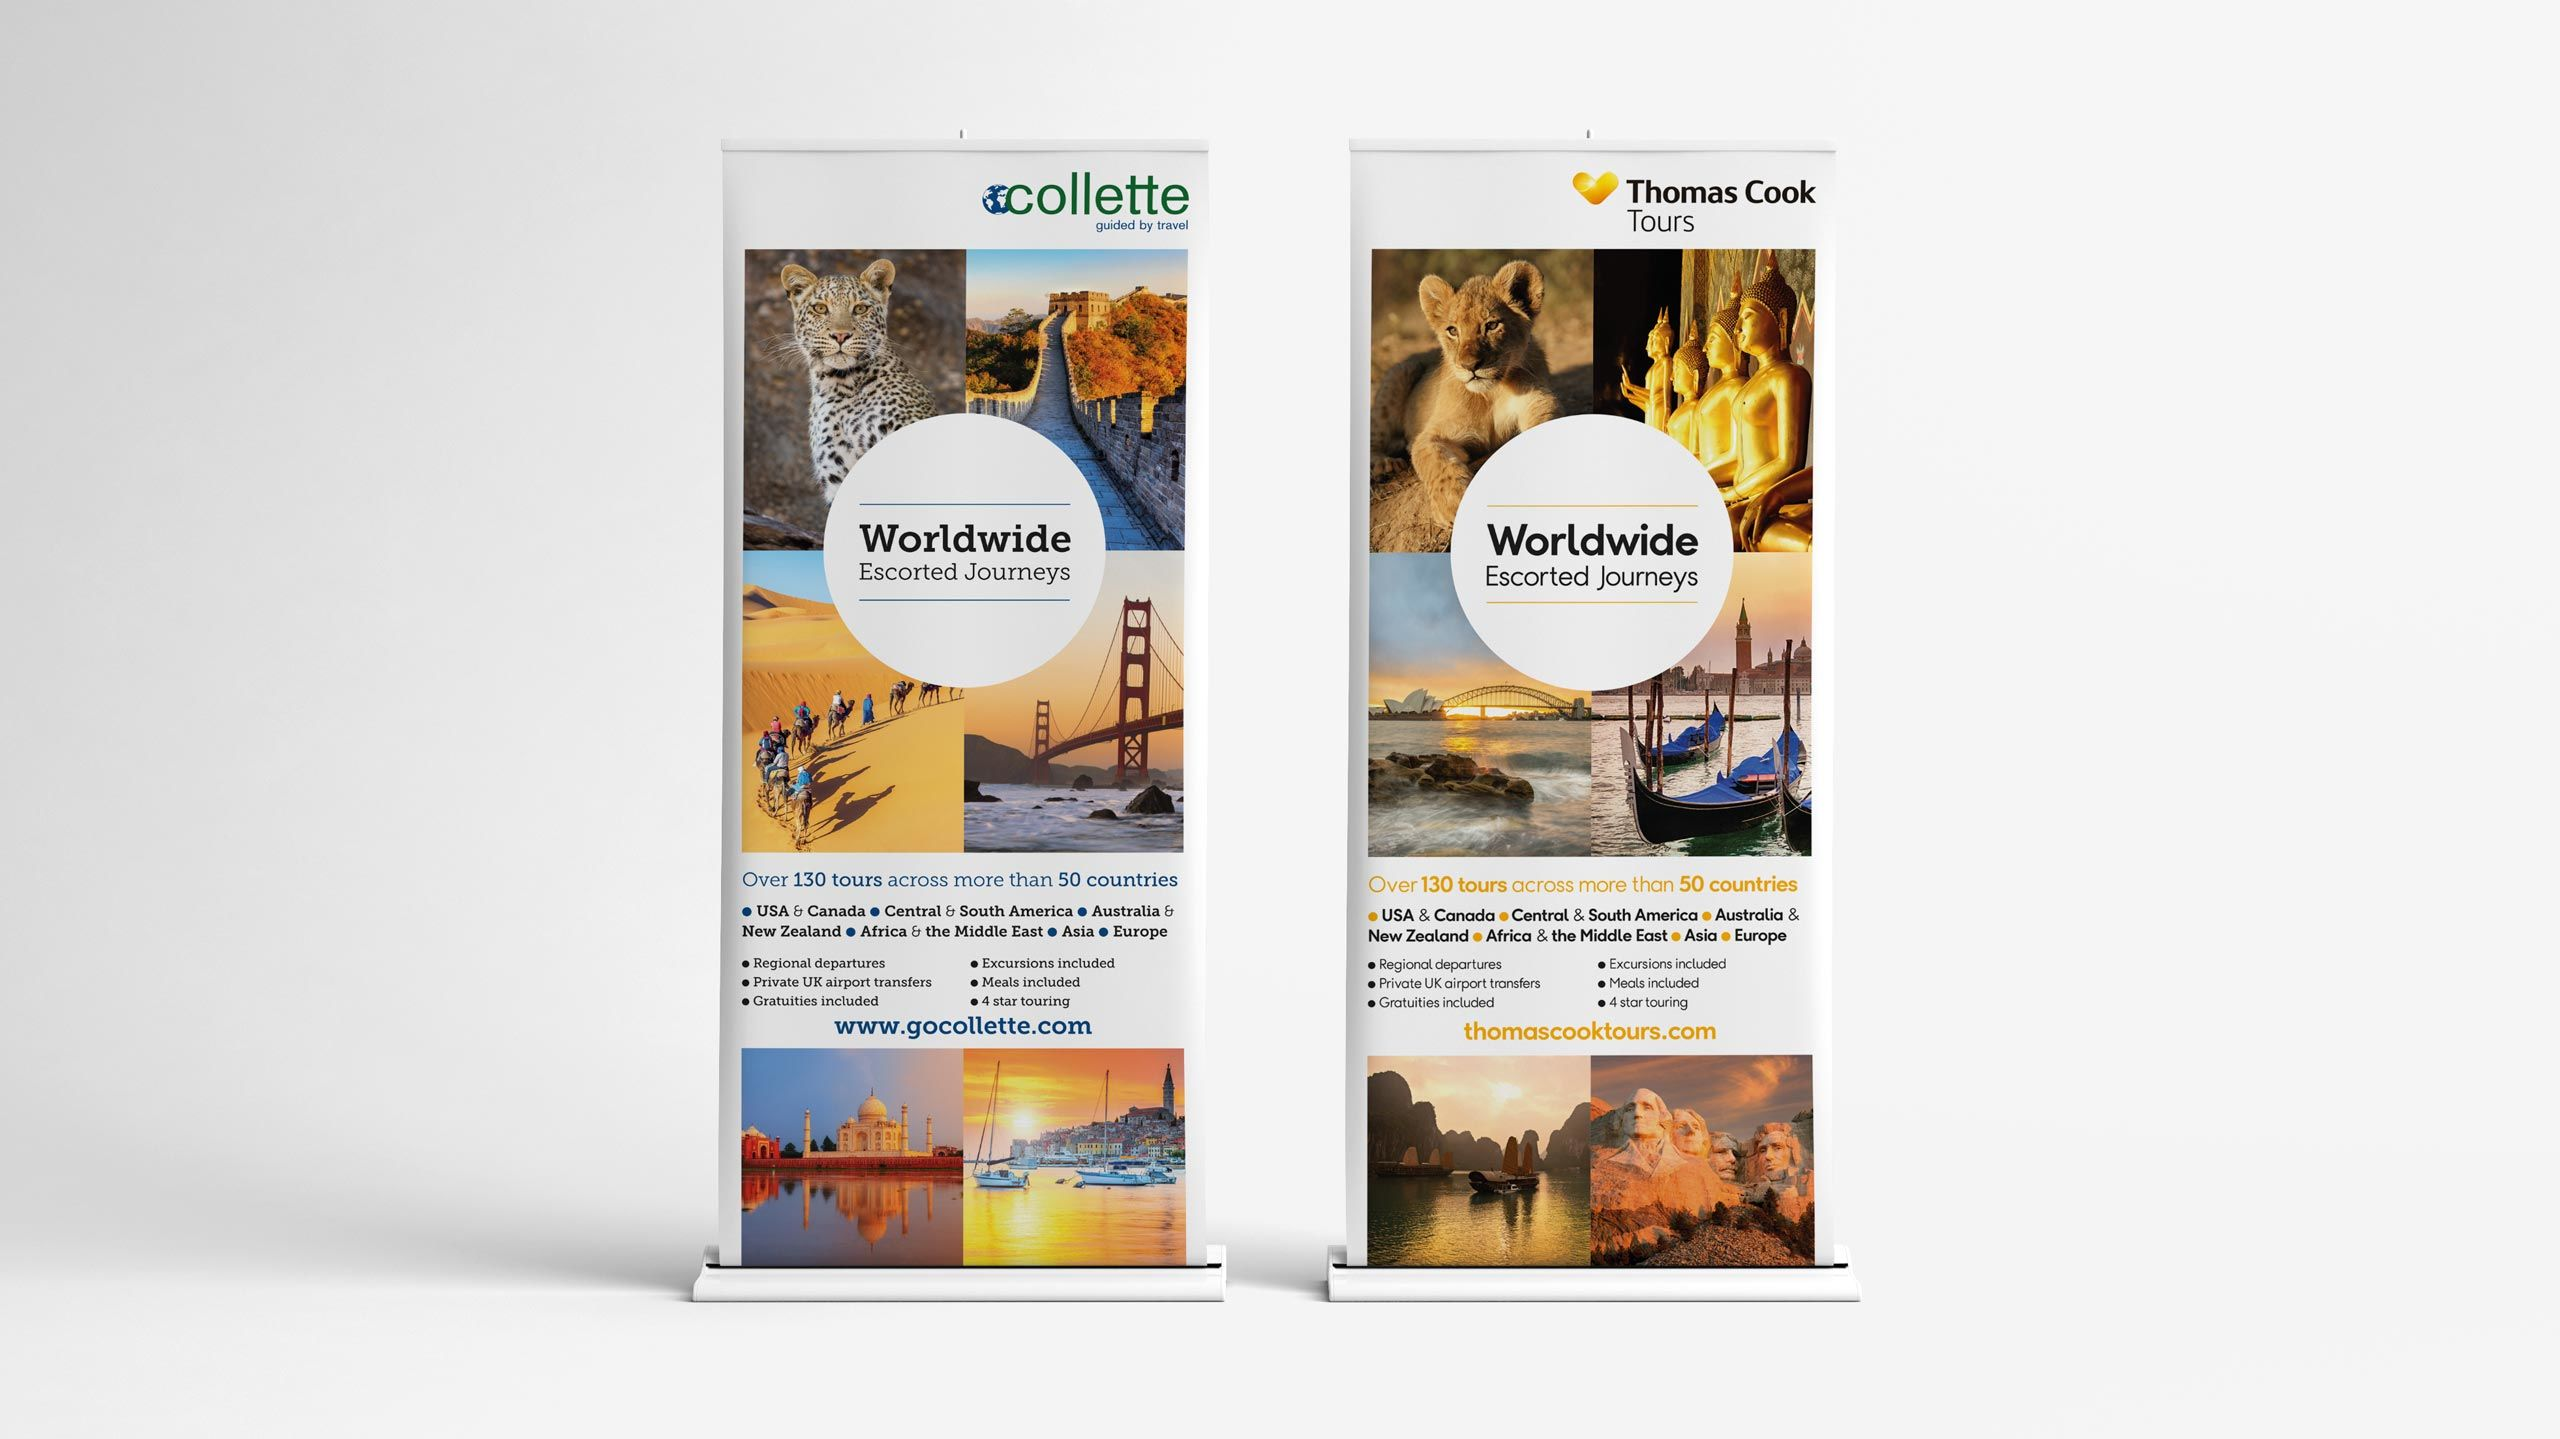 escorted travel branding pull up banners collette thomas cook